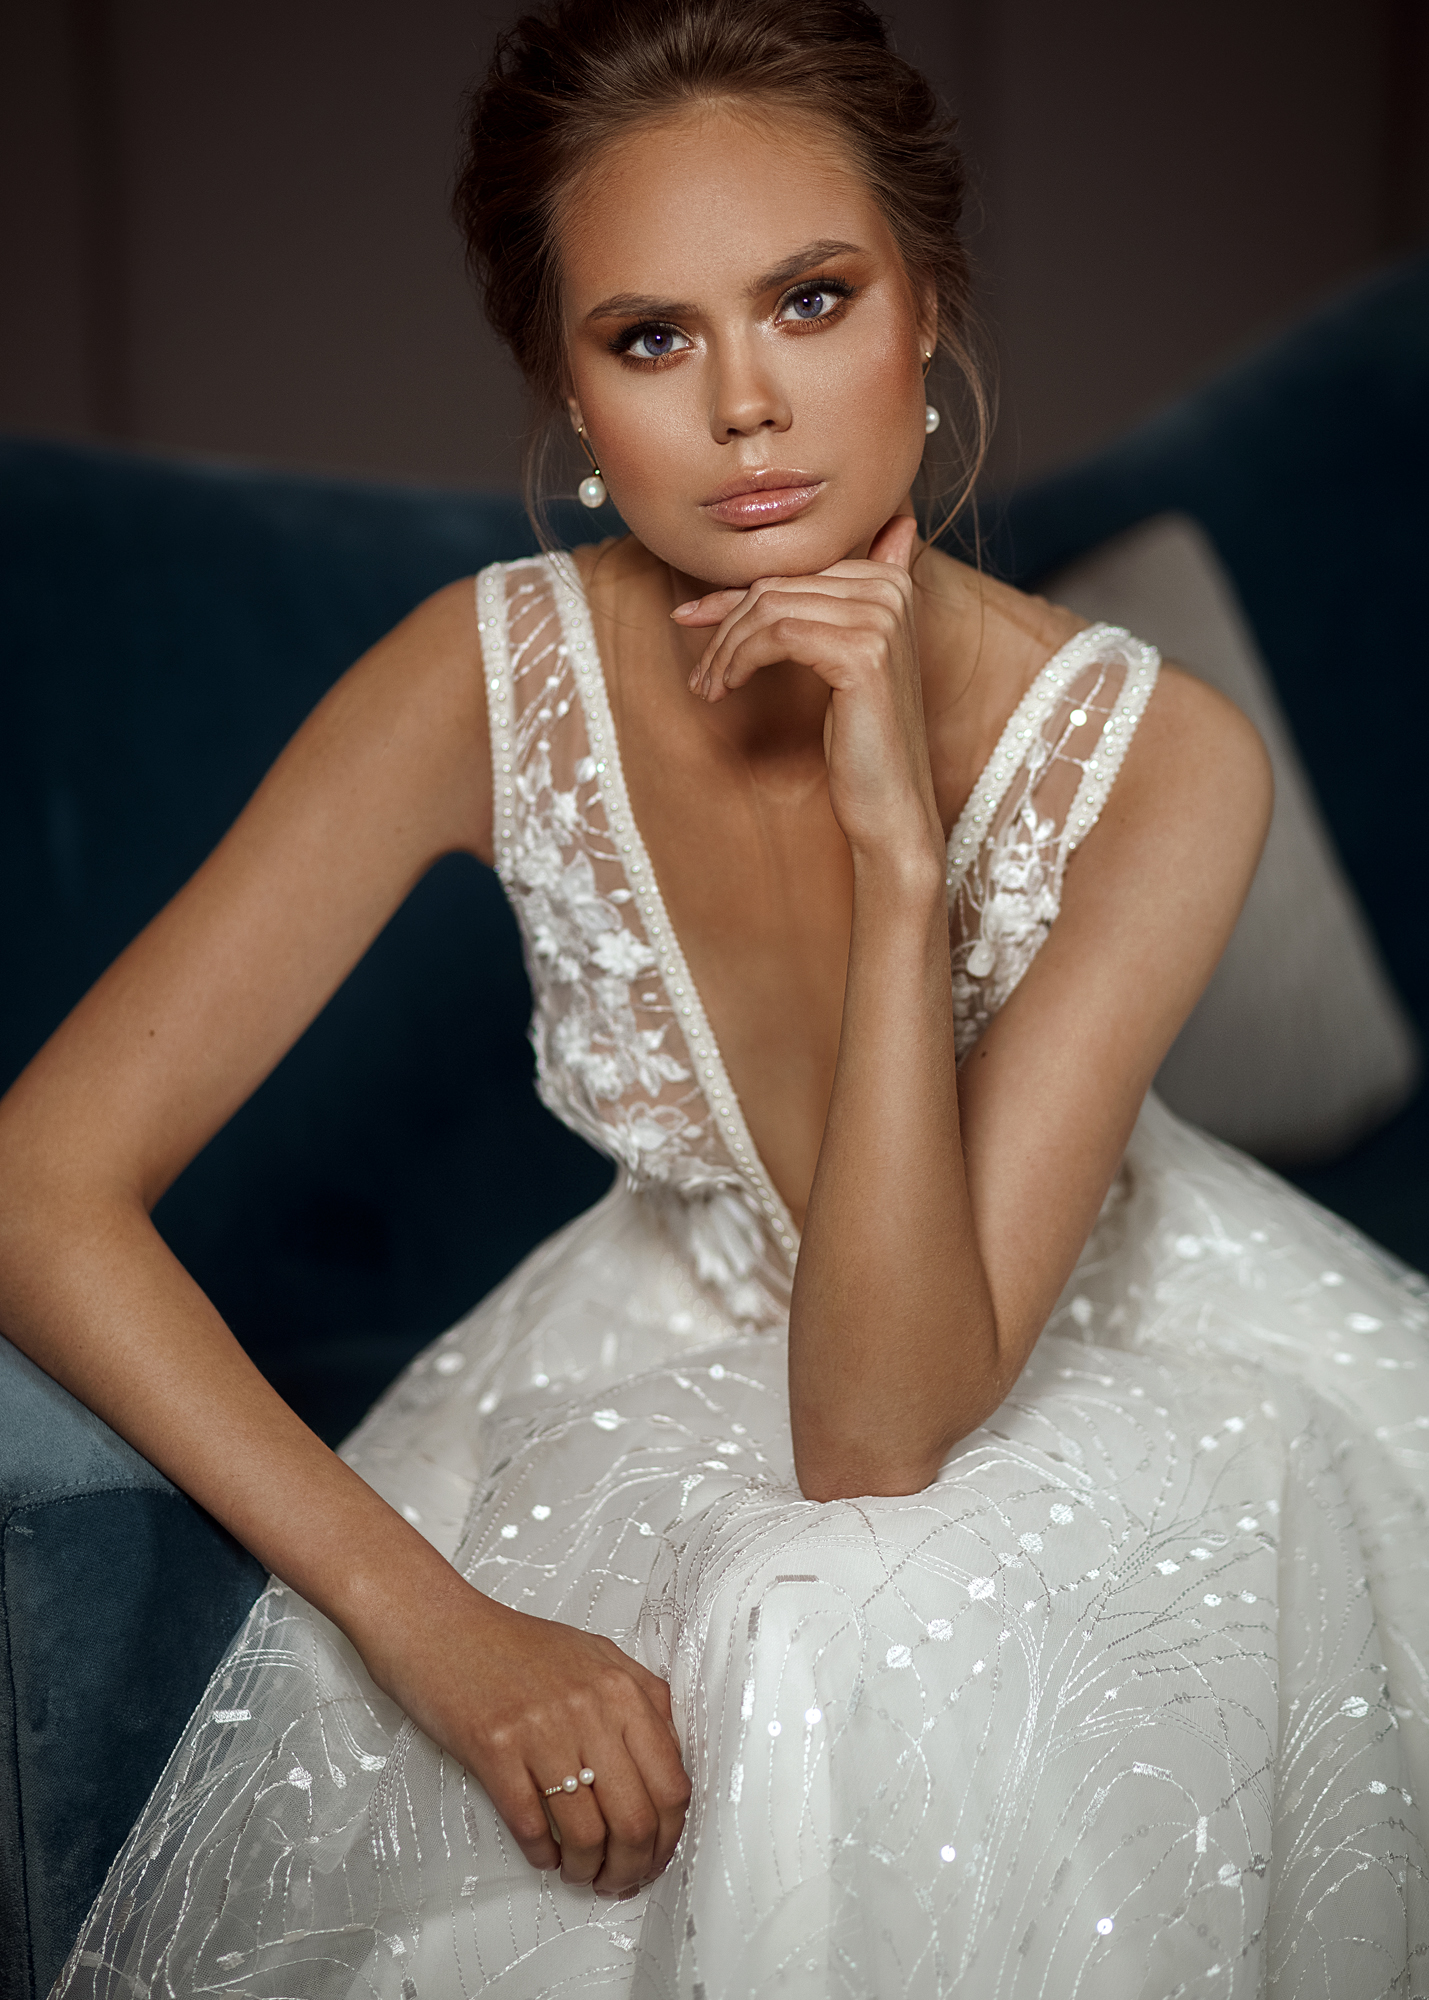 Модель BAZIERA от Versal wedding dress